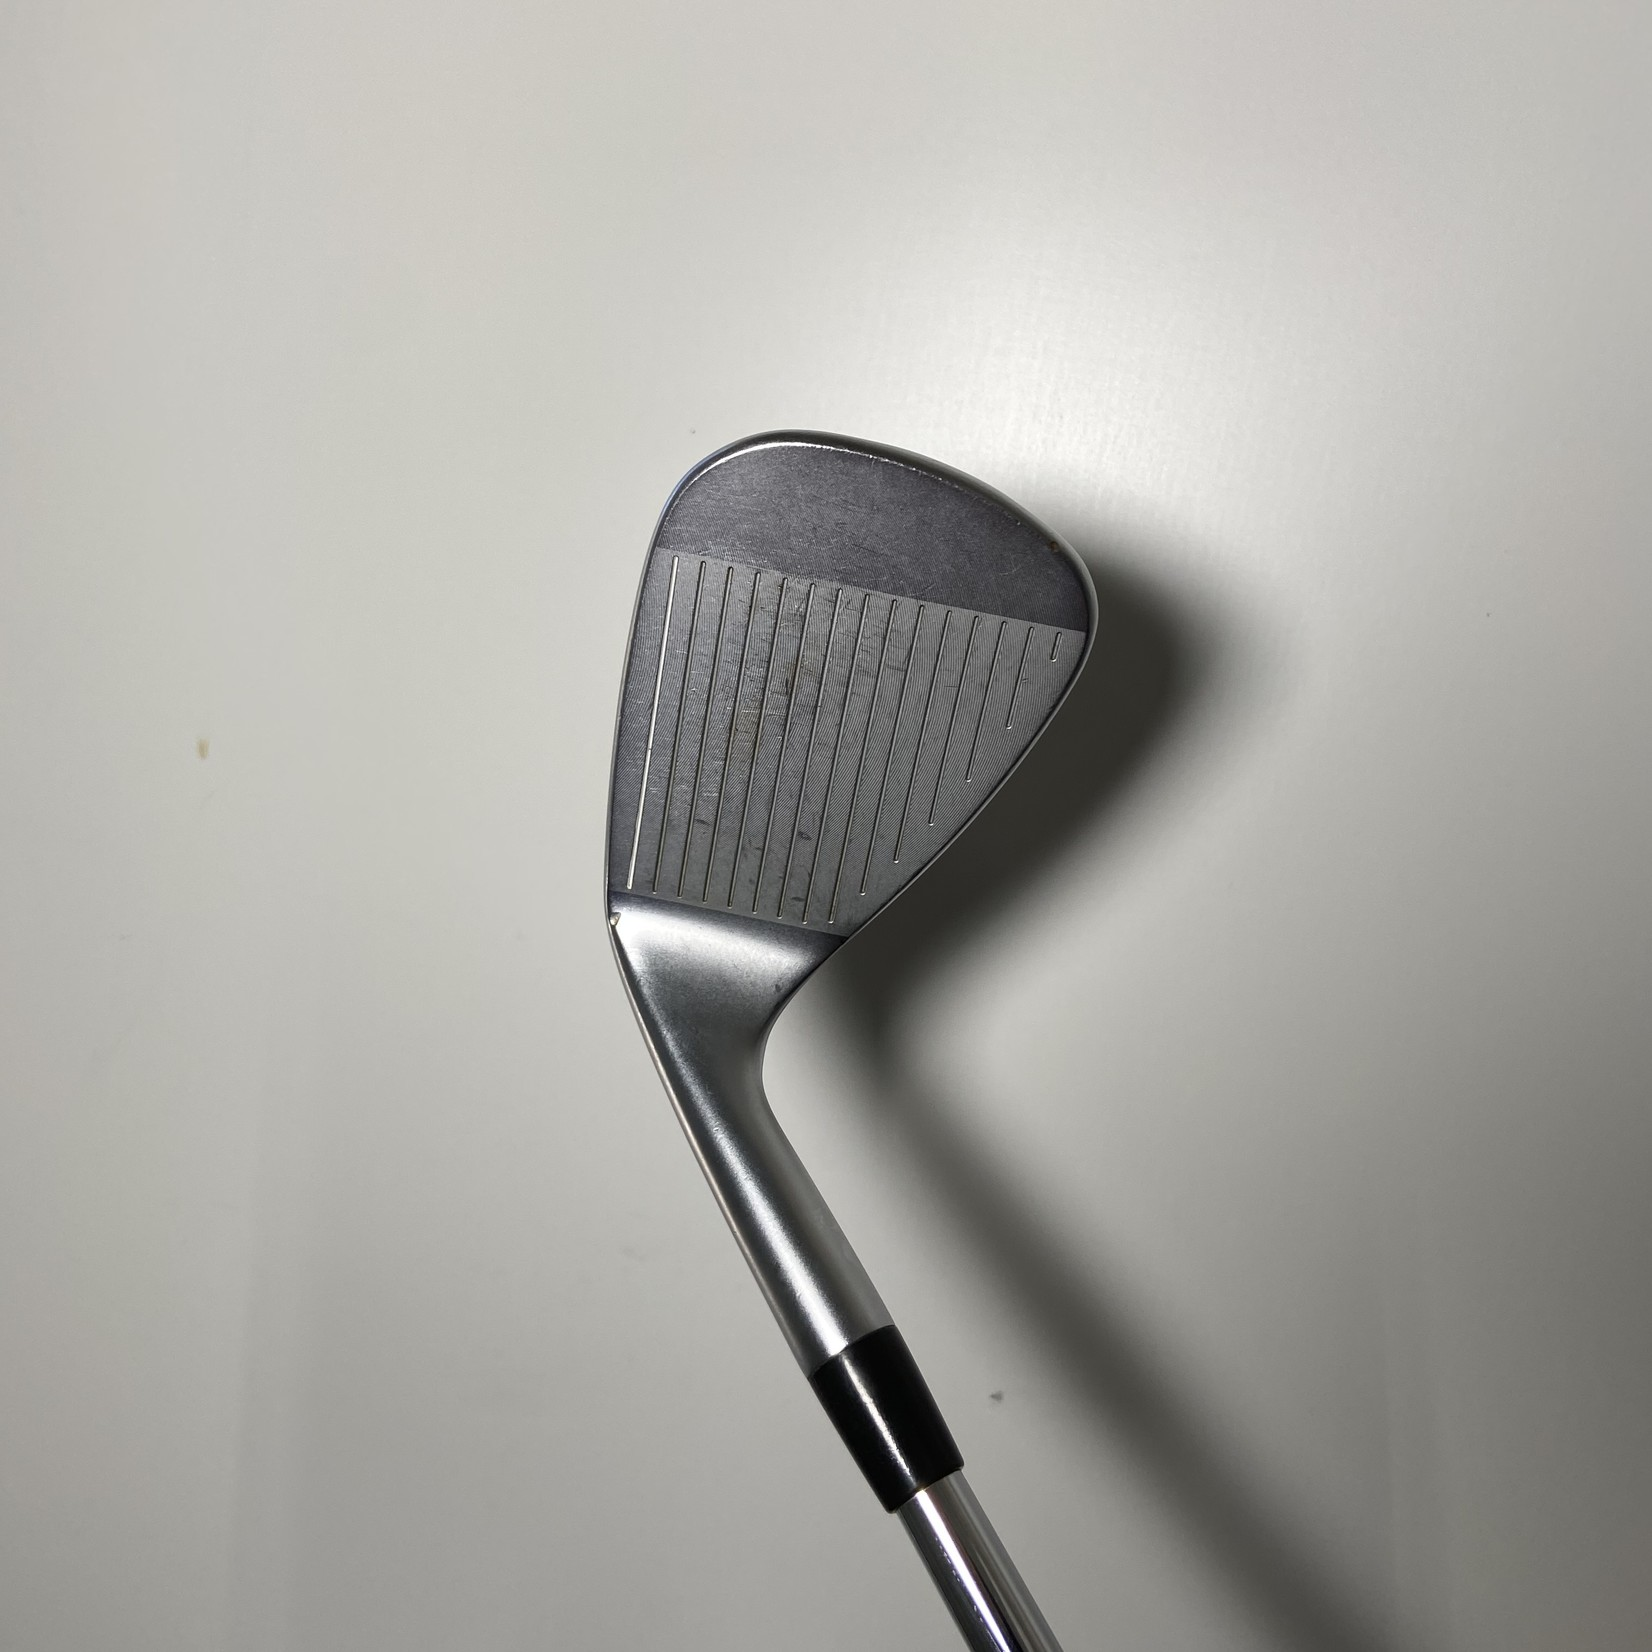 Ping Used Ping Blueprint Irons 4-PW RH STF